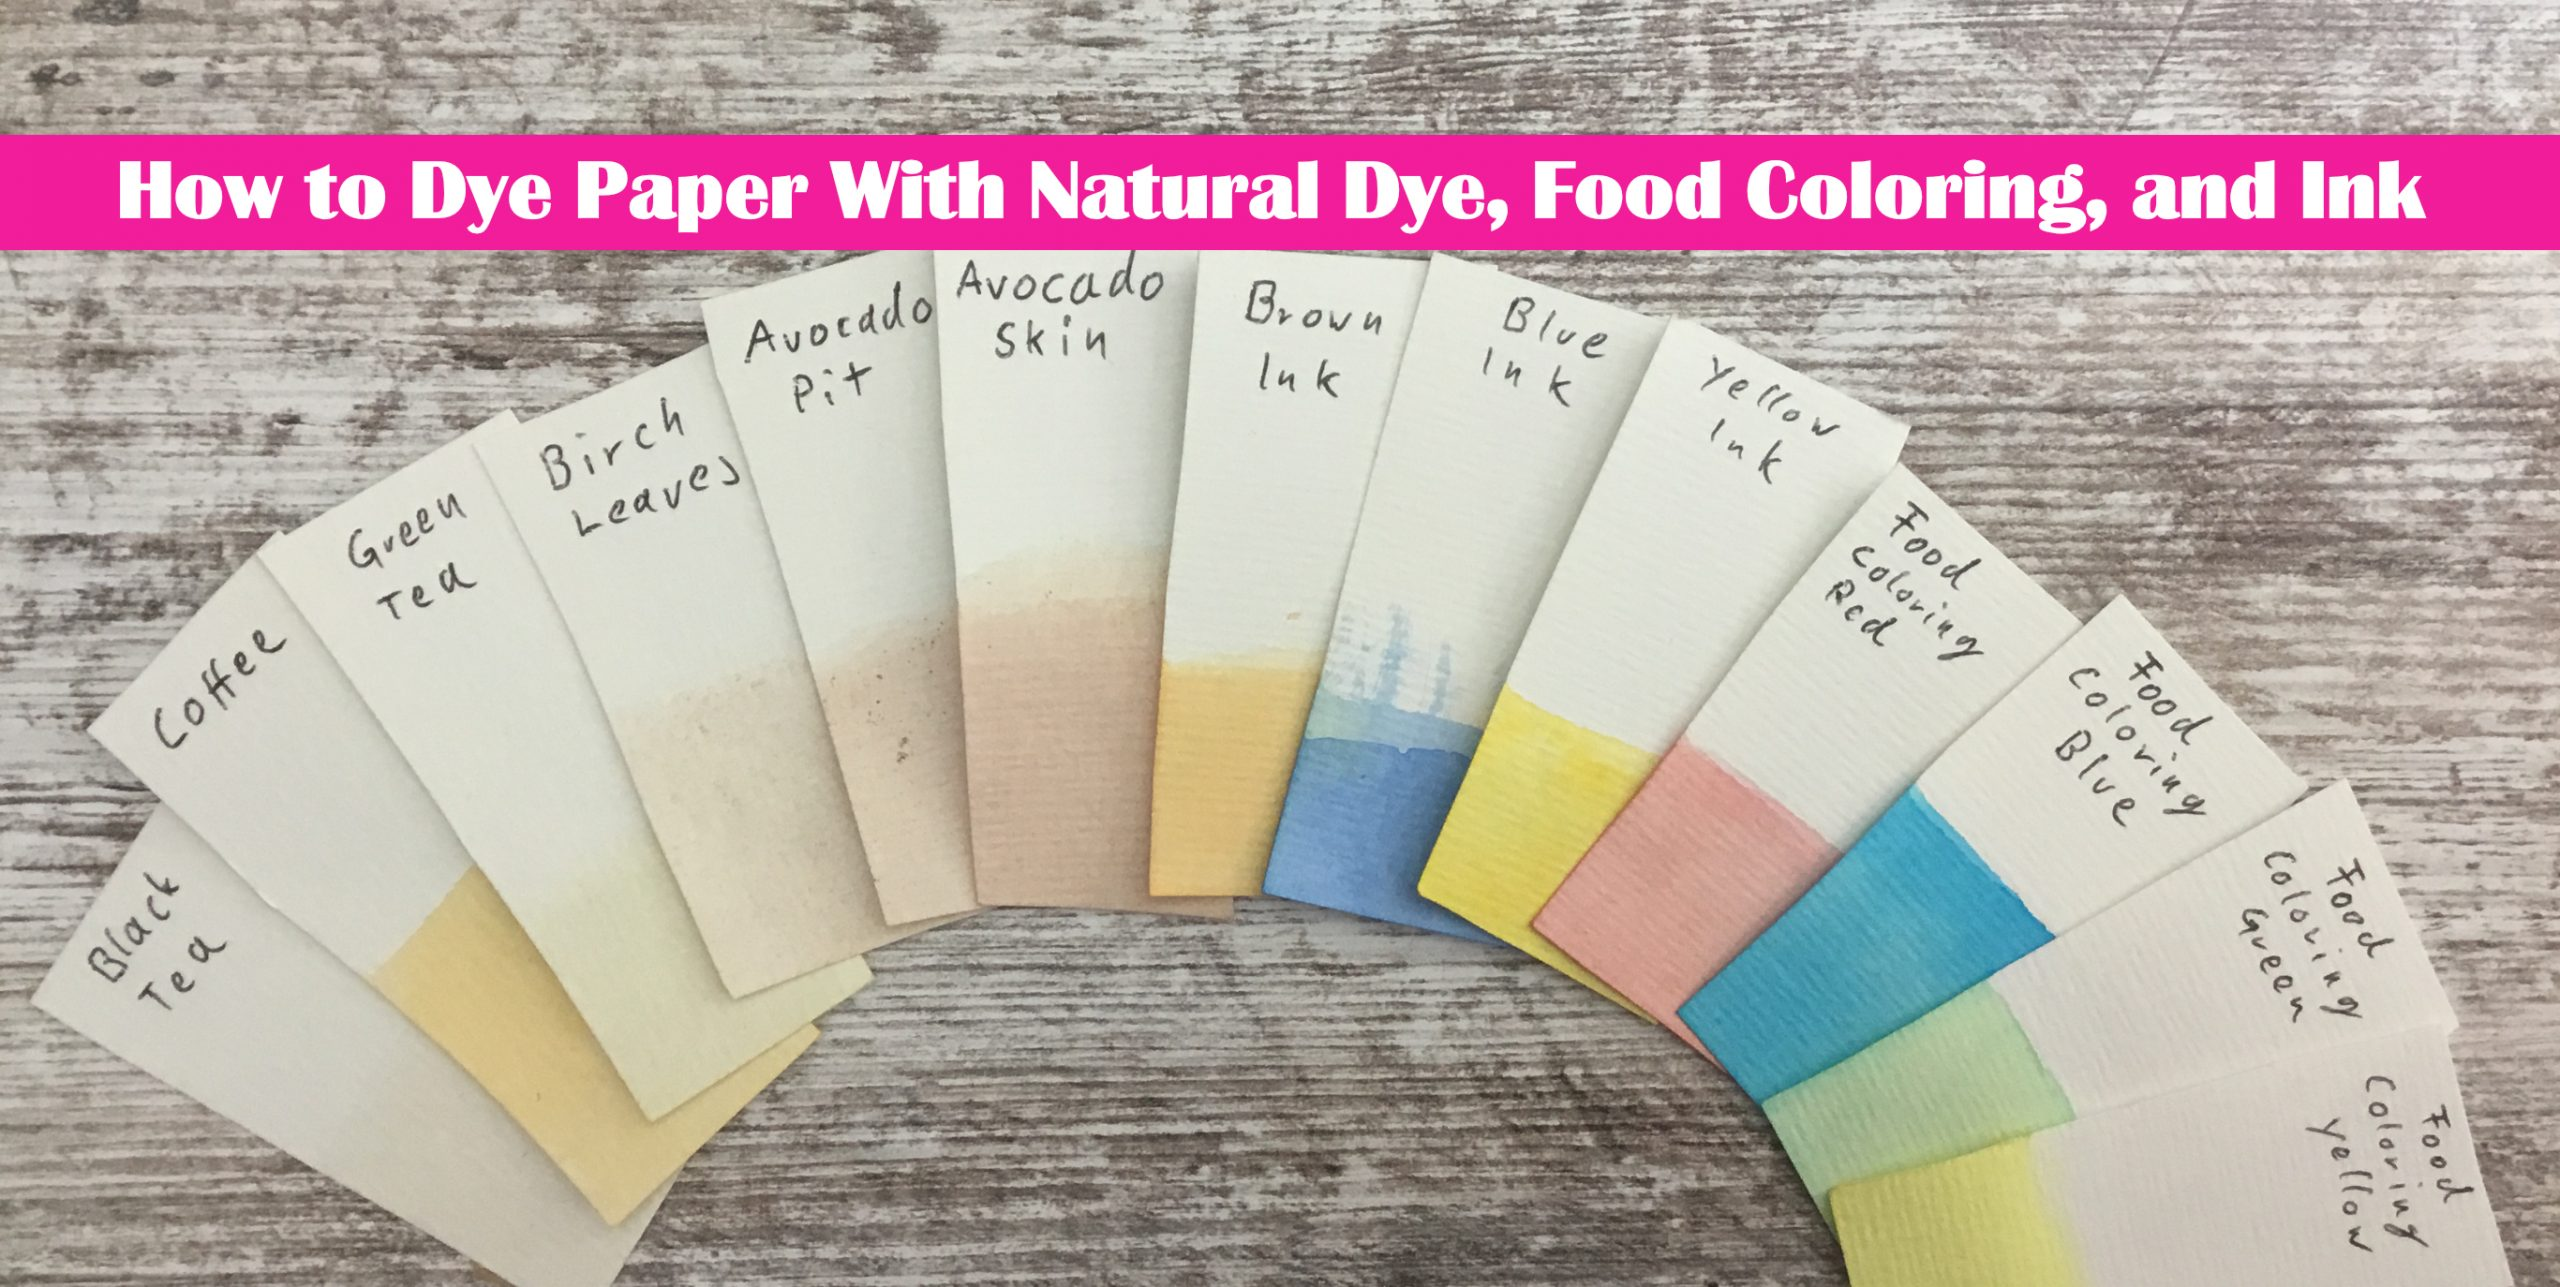 How to Dye Paper With Natural Dye, Food Coloring, and Ink